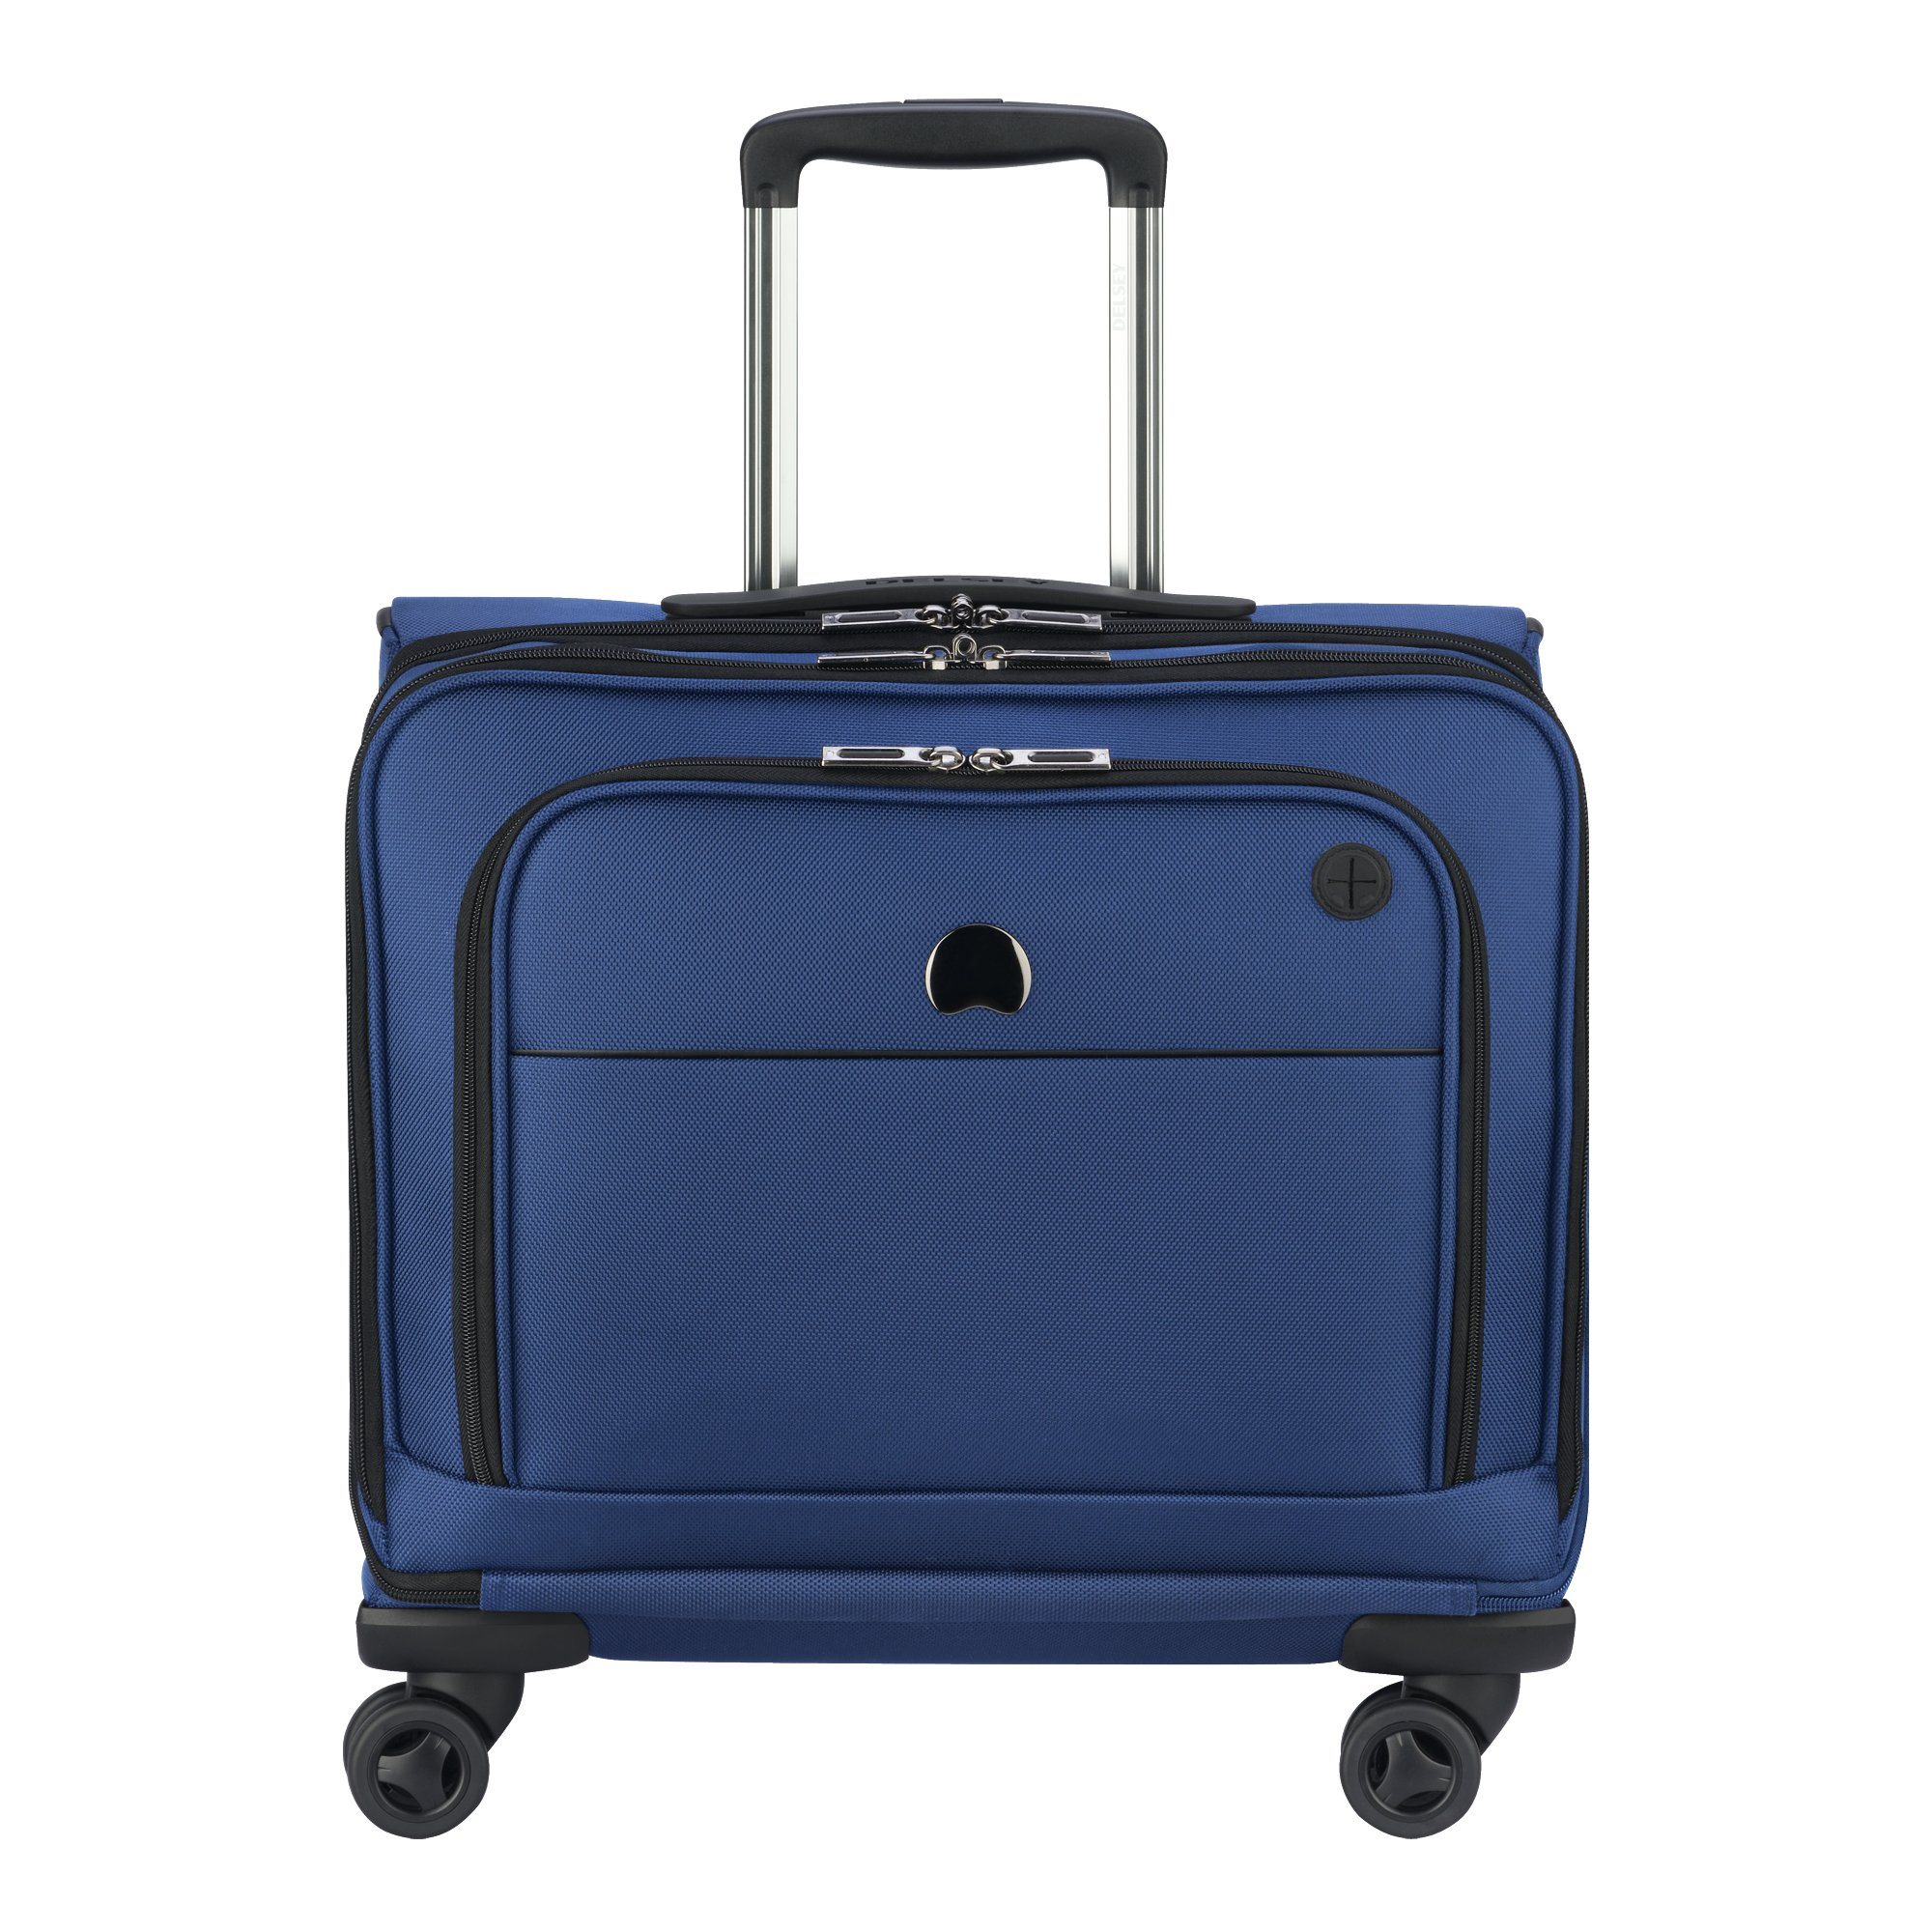 Delsey Luggage 4 Wheel Spinner Mobile Office-Exclusive Briefcase, Blue, One Size